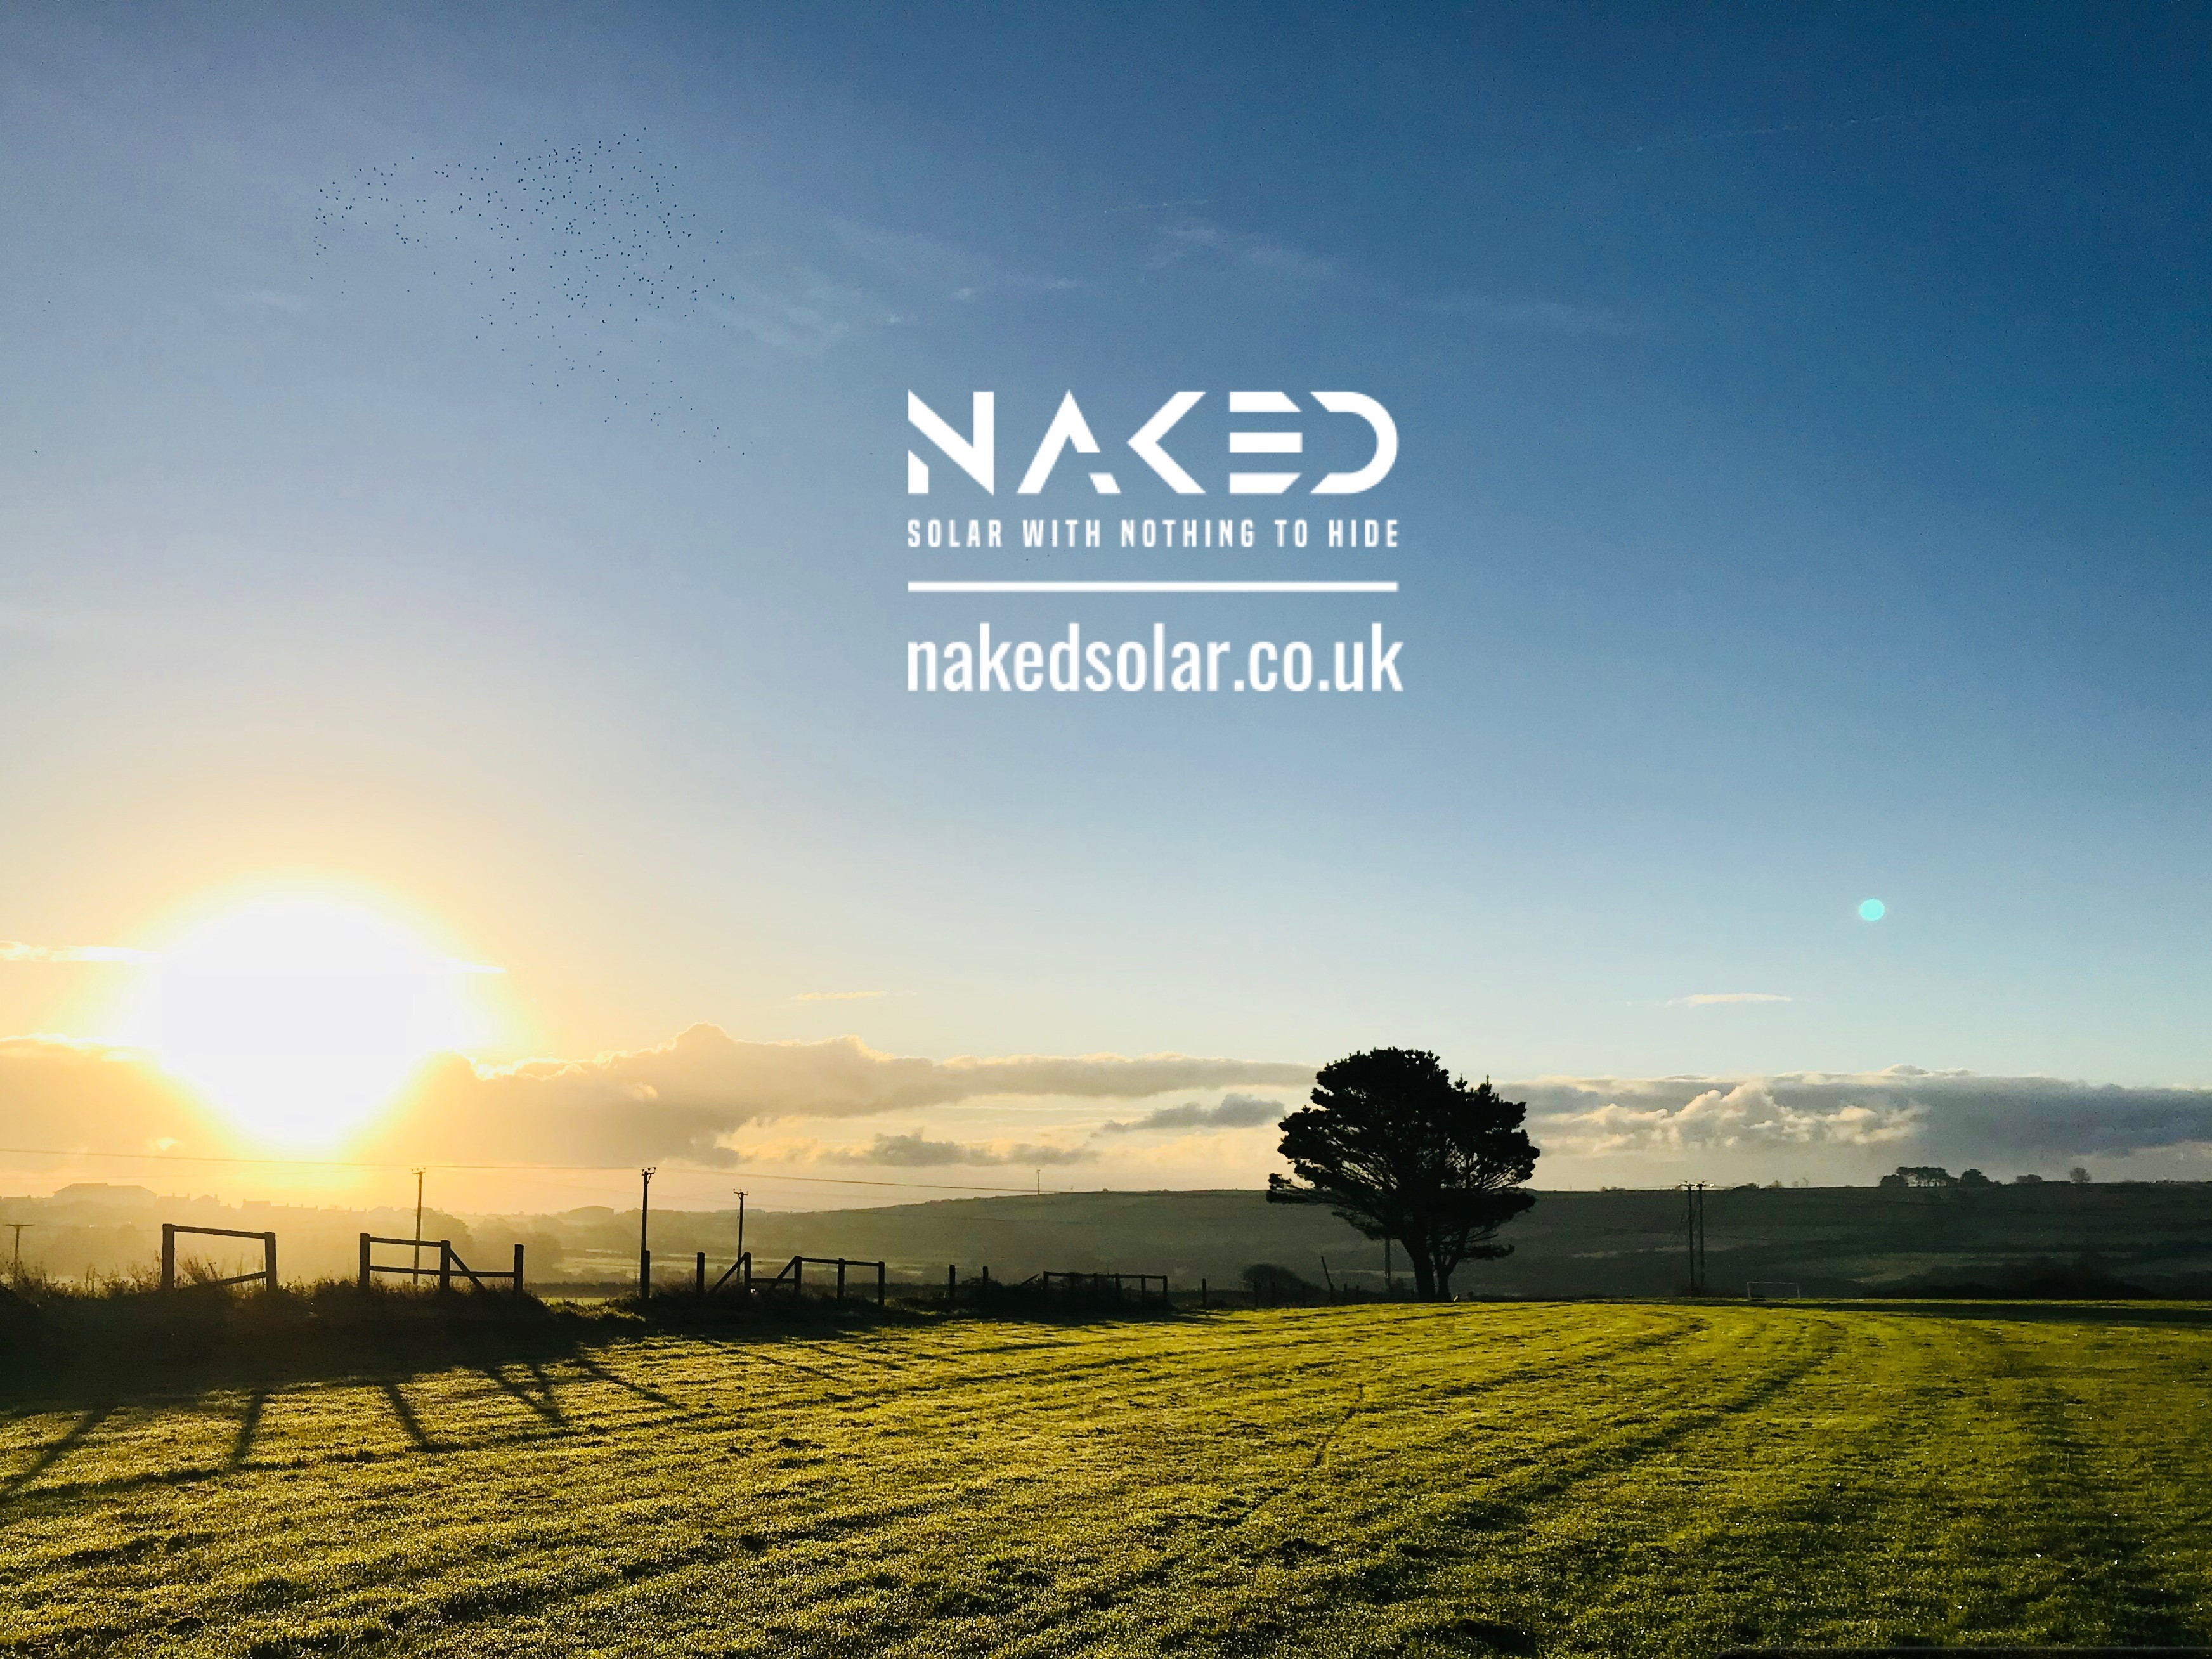 How Much Solar Pv Can I Have On My Roof Read The Naked Solar Blog